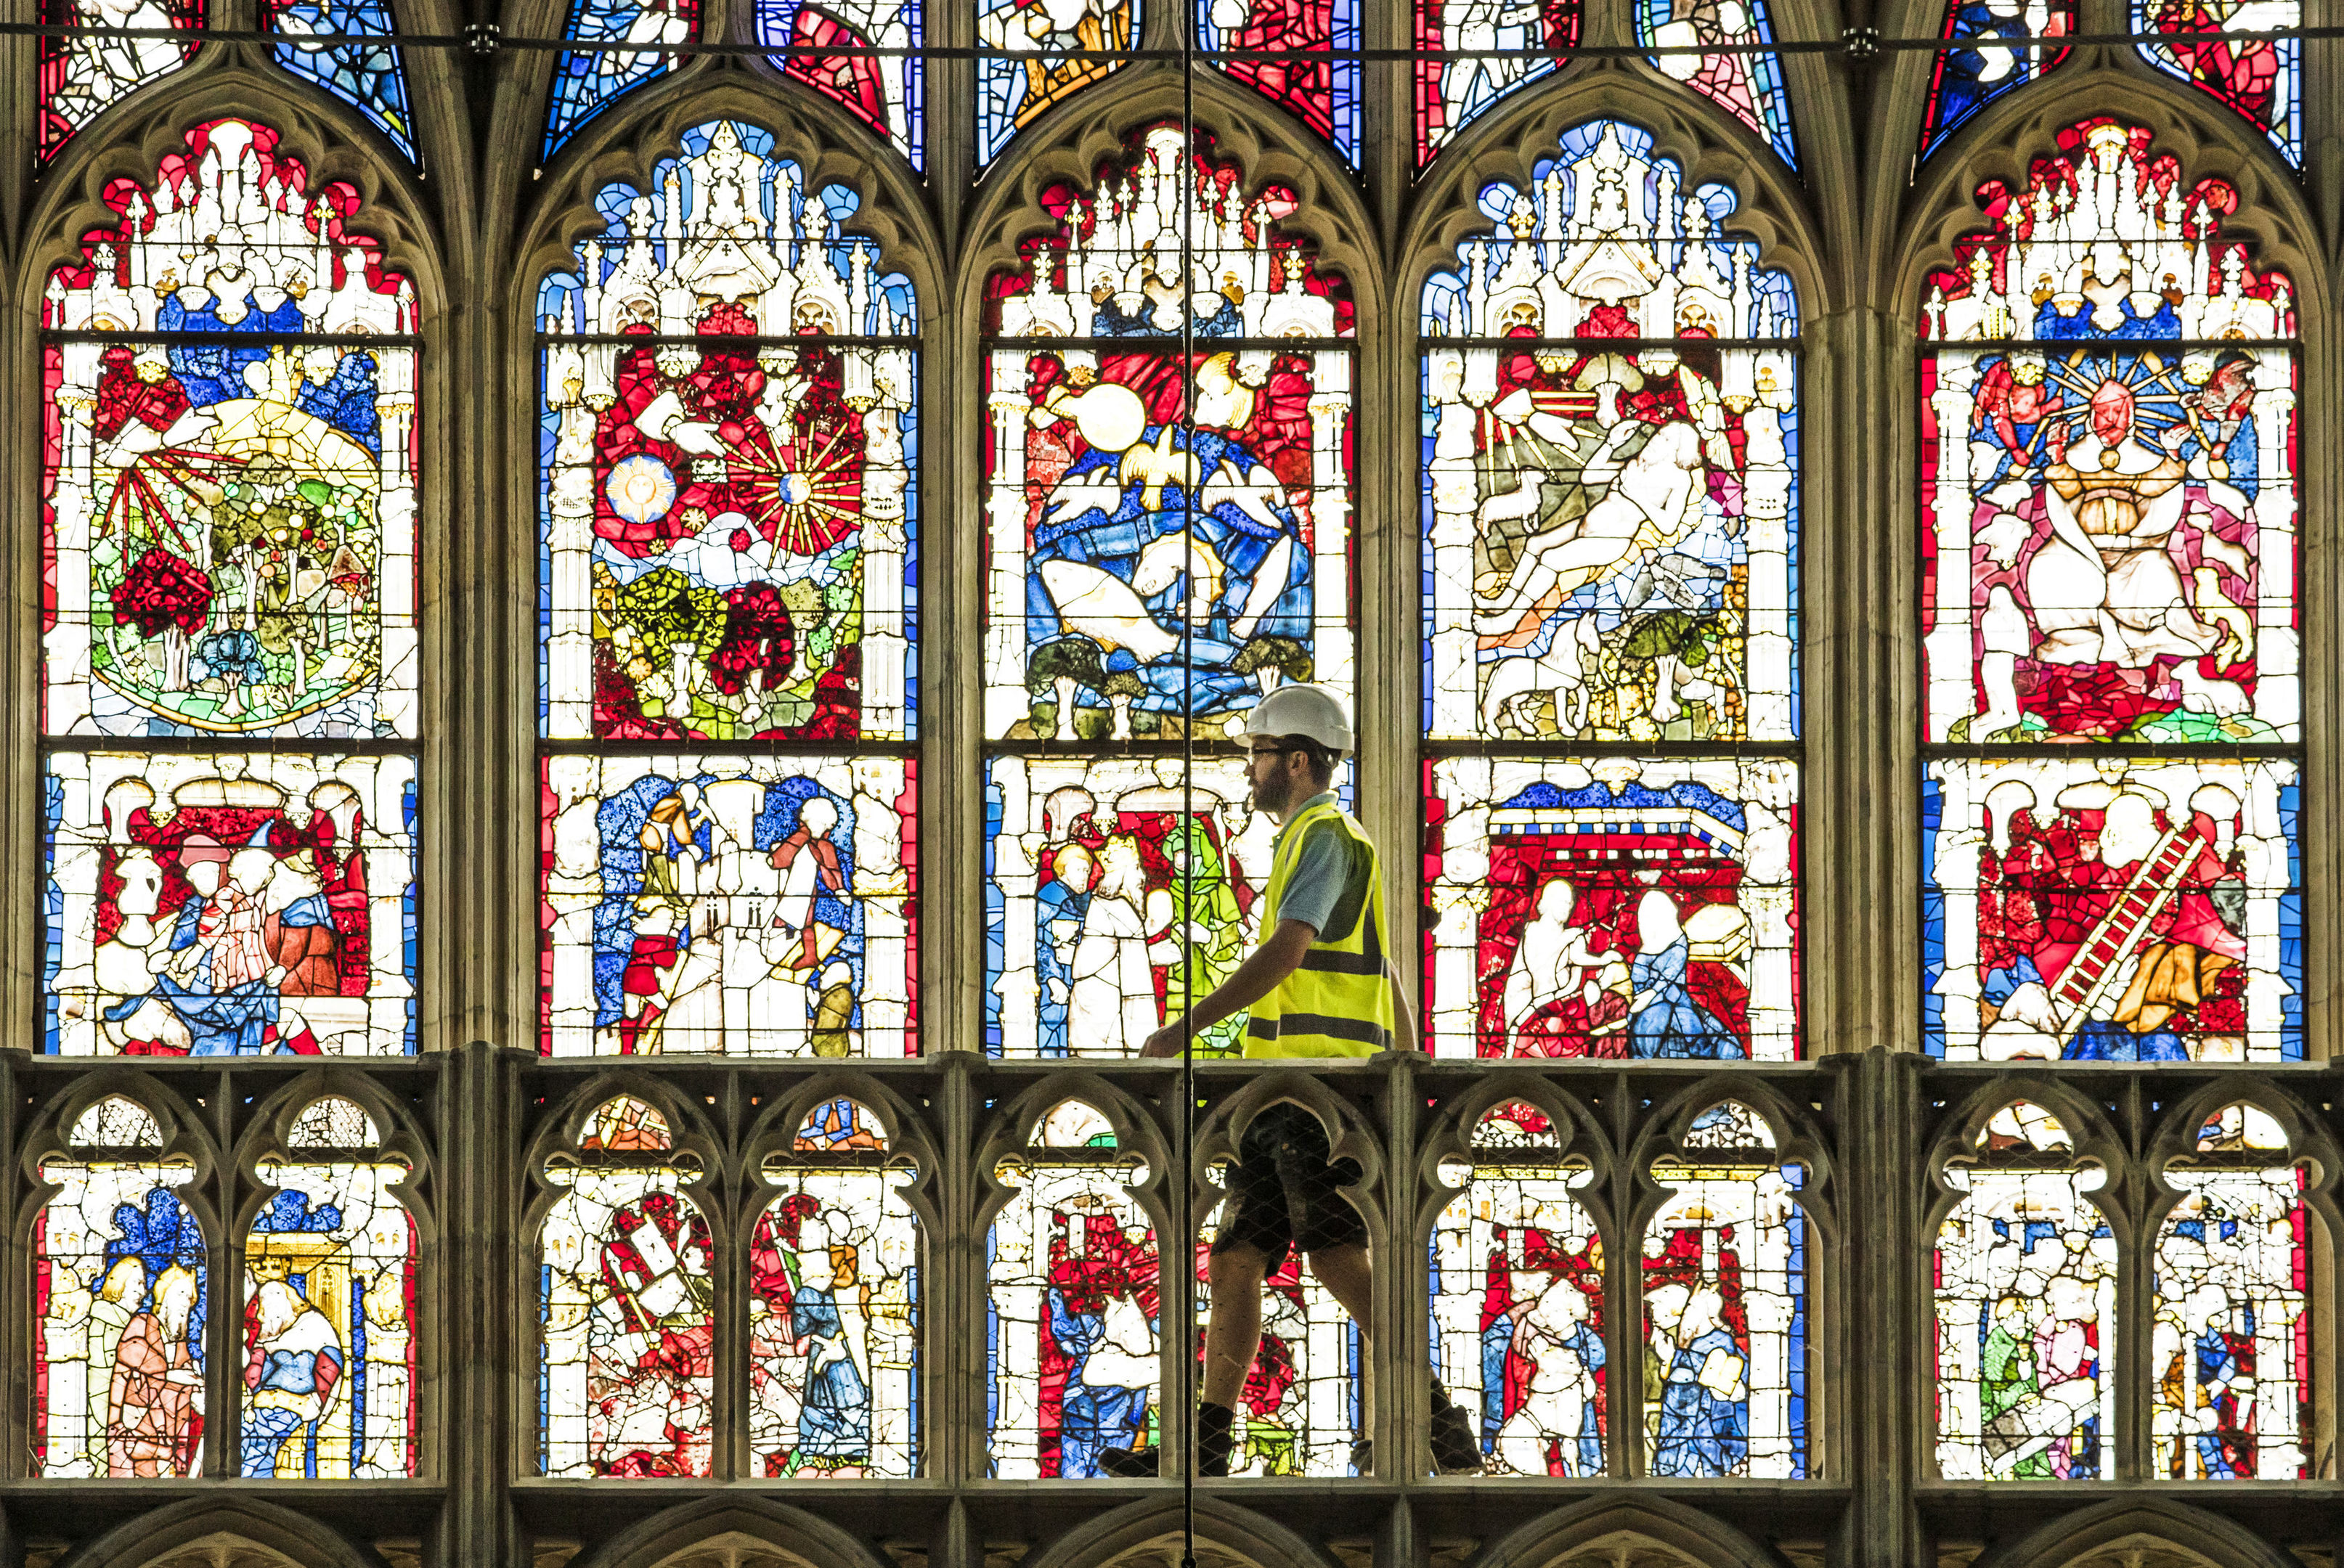 Lead Labourer Andy Bracegirdle walks past the 600-year old Great East Window in York Minster, as work is completed in a decade-long project to conserve and restore the largest expanse of medieval stained glass in the country. PRESS ASSOCIATION Photo. Picture date: Thursday May 17, 2018. The work has been part of an £11.5m programme which has included extensive work by the Minster's stonemasons to repair and replace hundreds of stones at the cathedral's East End, which houses the window. See PA story HERITAGE Minister. Photo credit should read: Danny Lawson/PA Wire